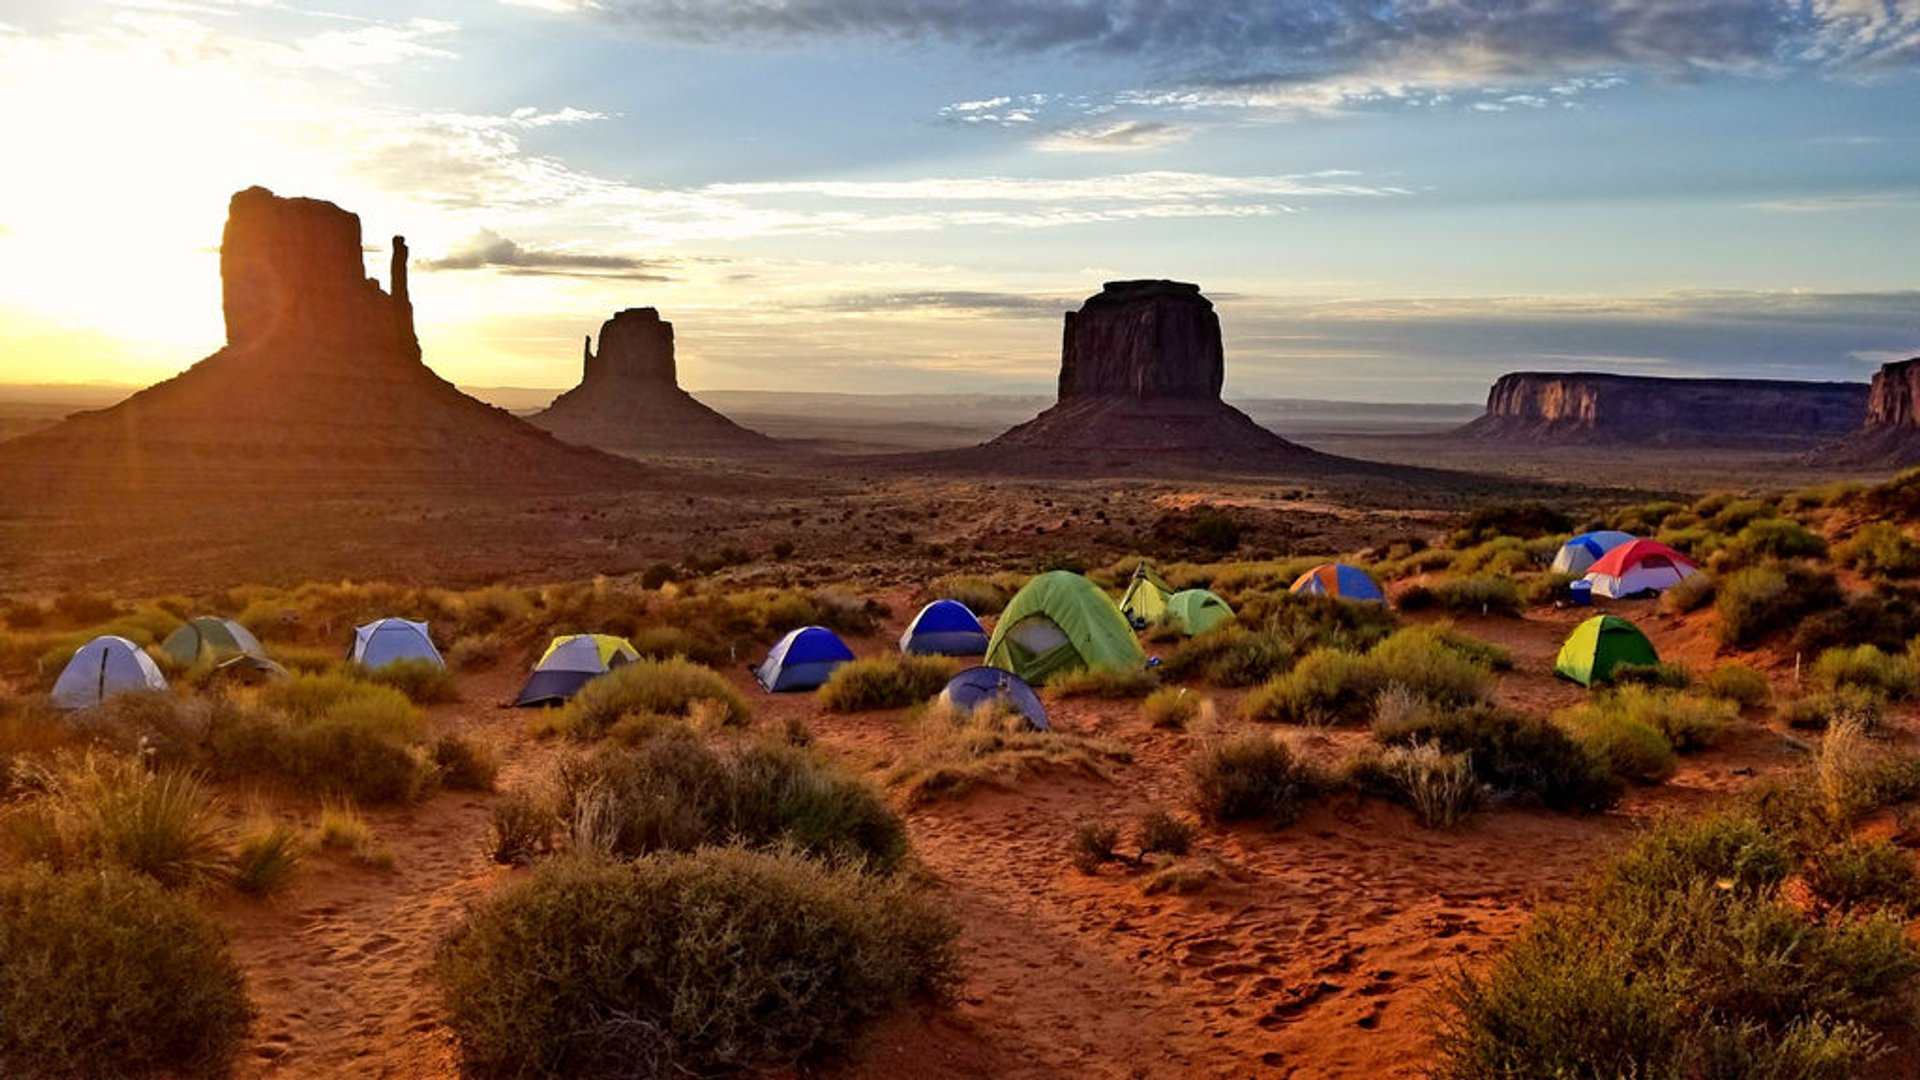 Campground in Monument Valley 2020